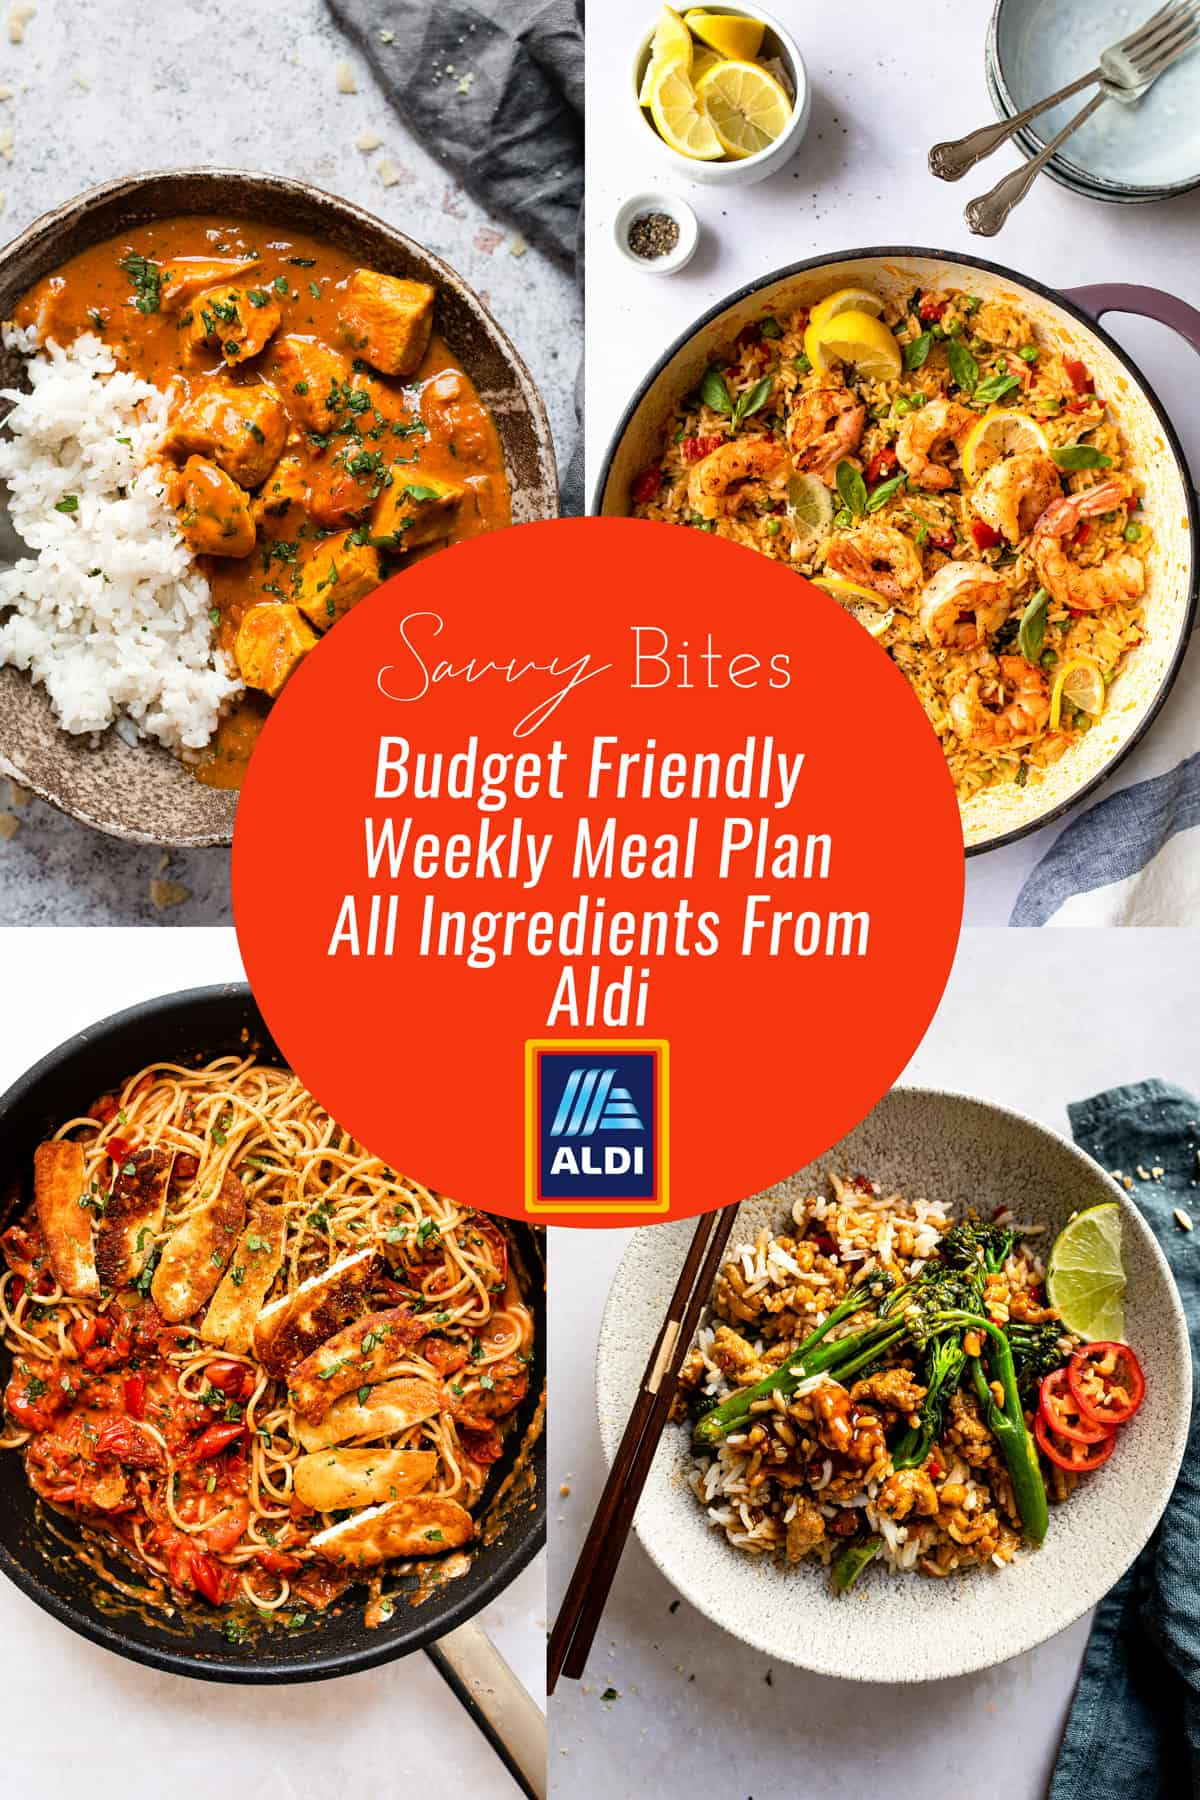 Aldi budget meal plan photo collage with text overlay.